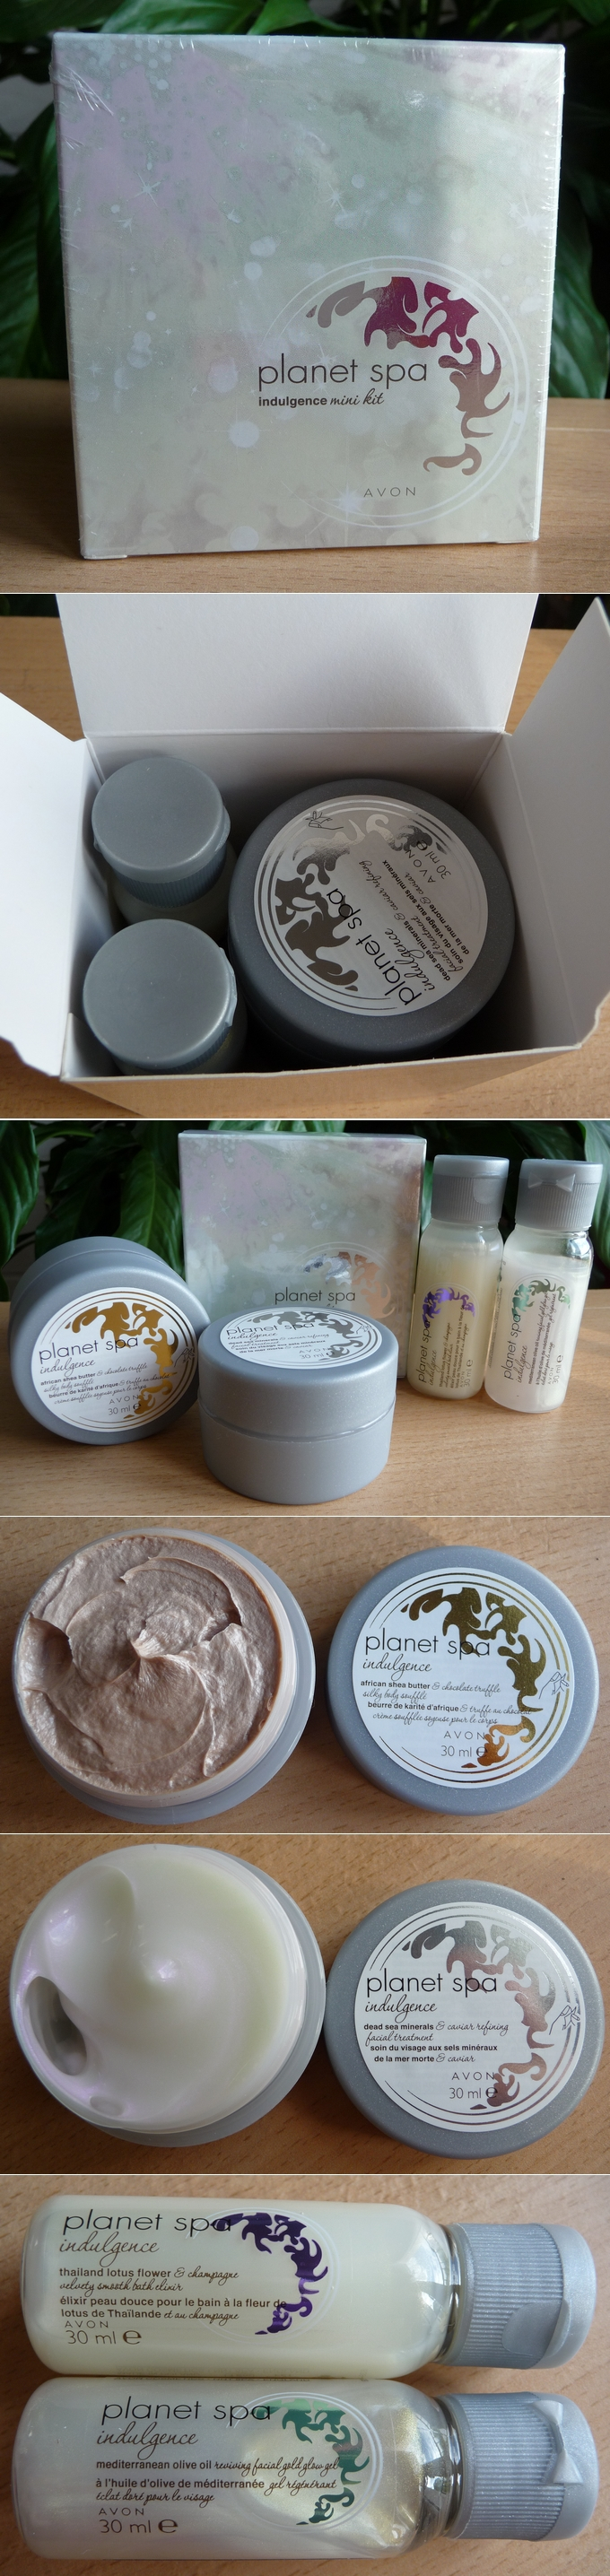 Kit de voyage Planet Spa Indulgence